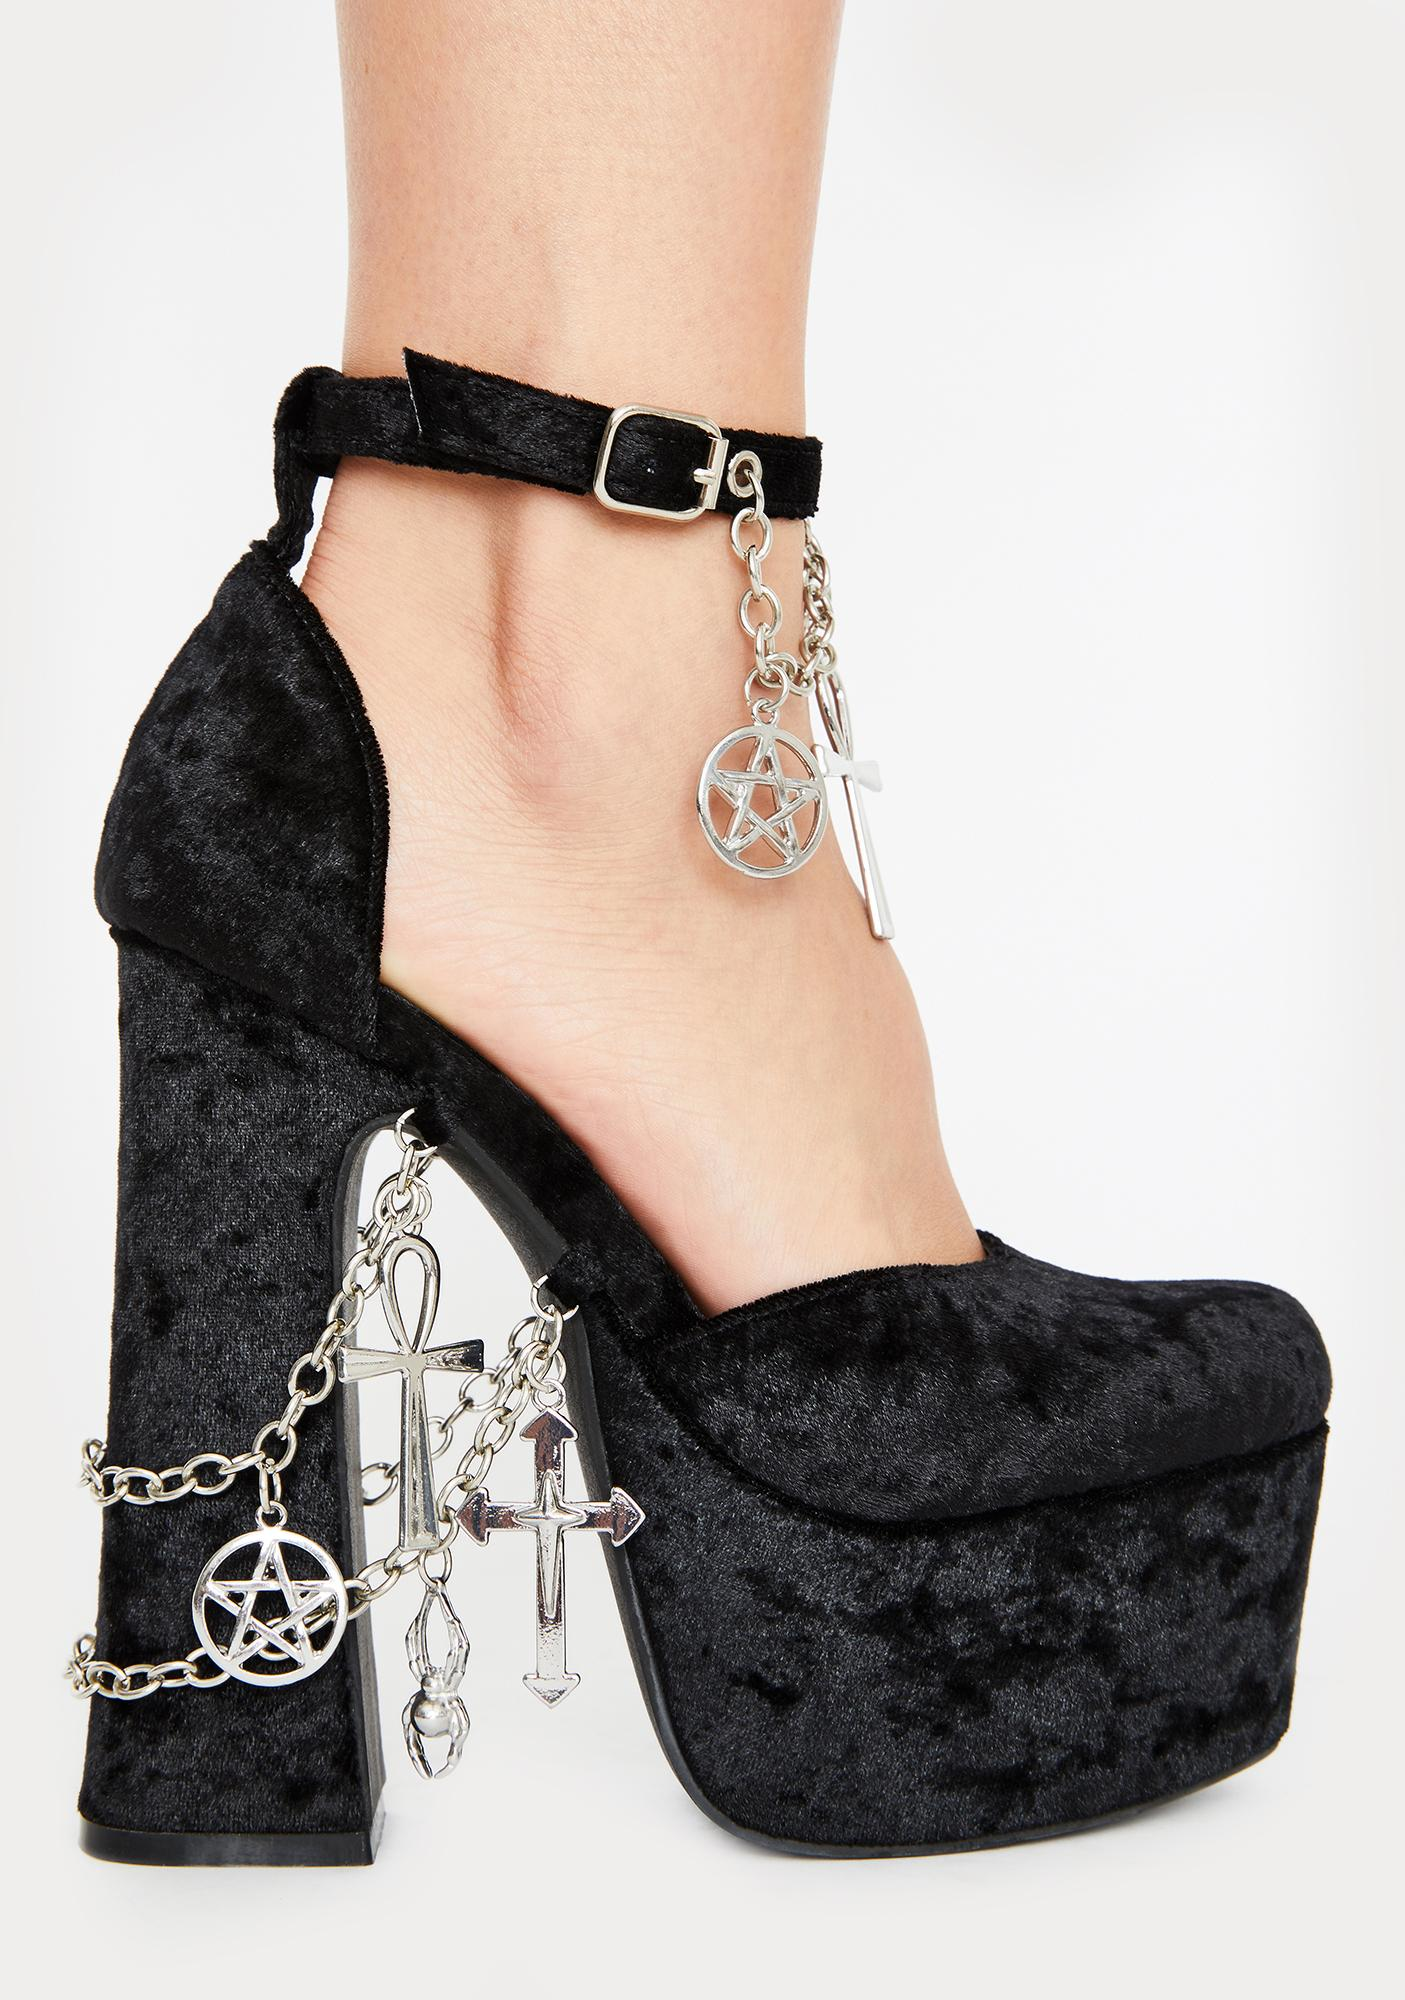 Dolls Kill x The Craft Betches Of Eastwick Platform Heels